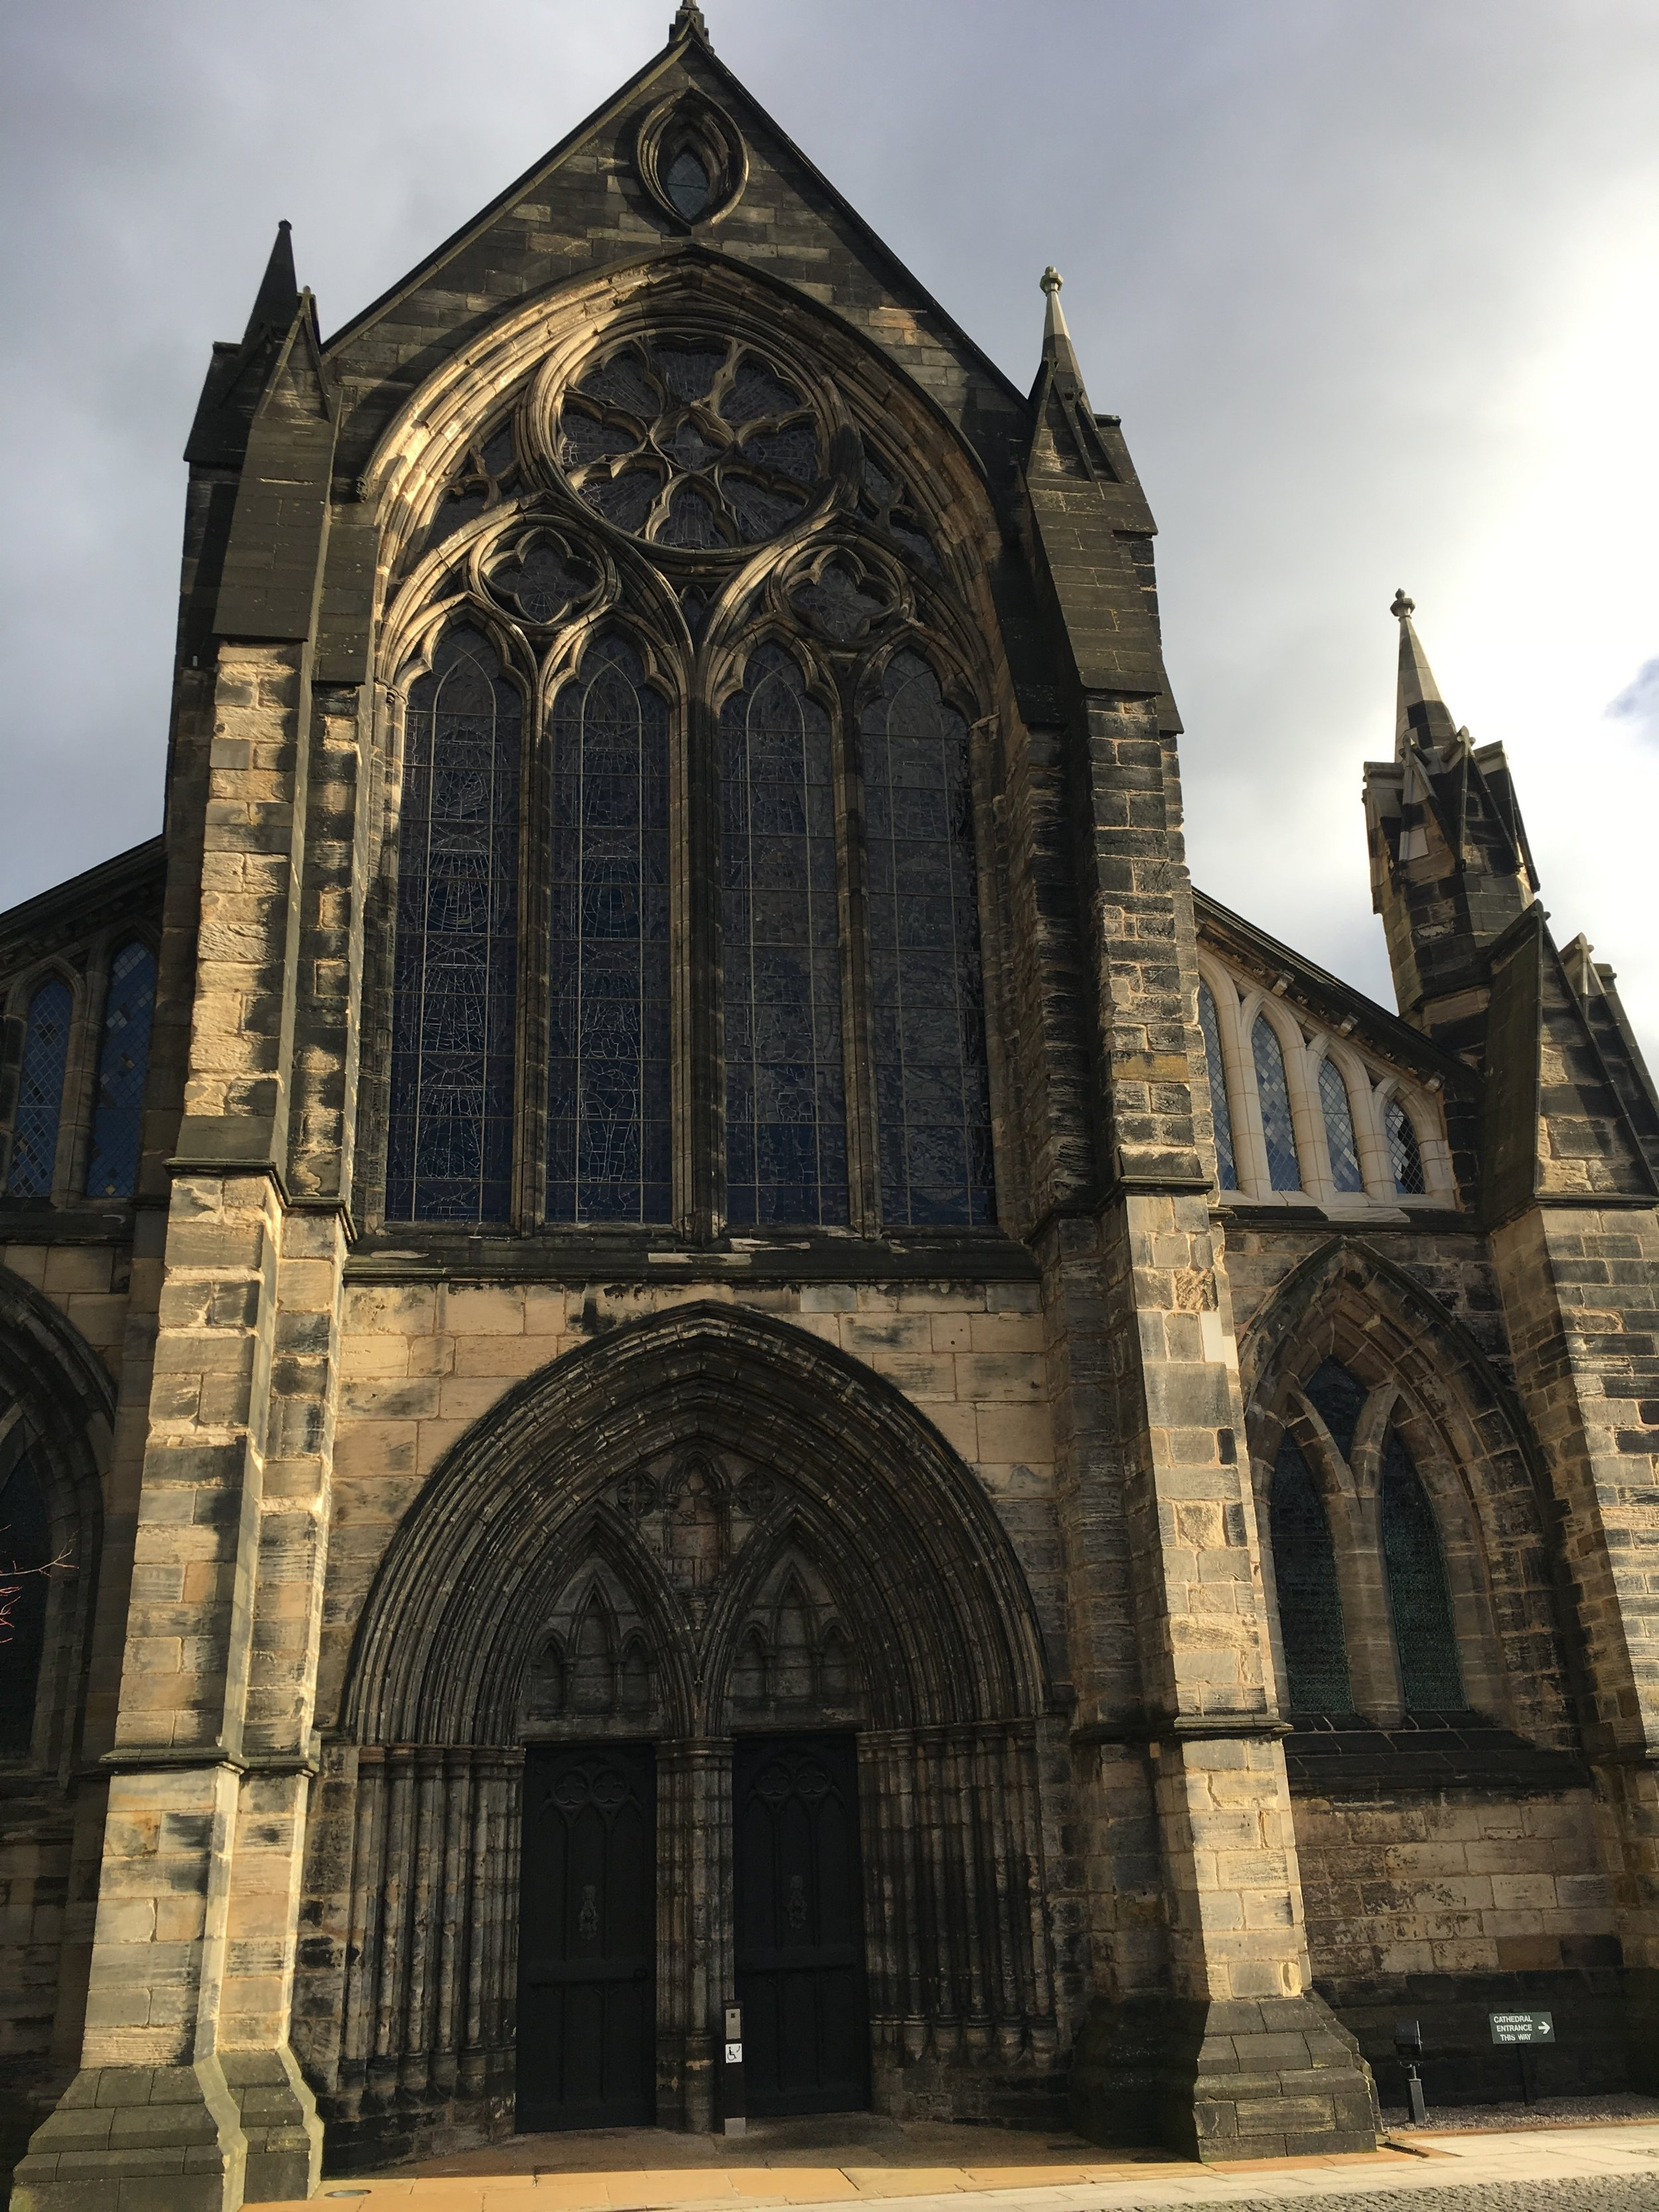 The Glasgow Cathedral. Free entry and knowledgeable friendly staff on hand to explain things. We got lucky and got a private tour just after church services. Stunning!